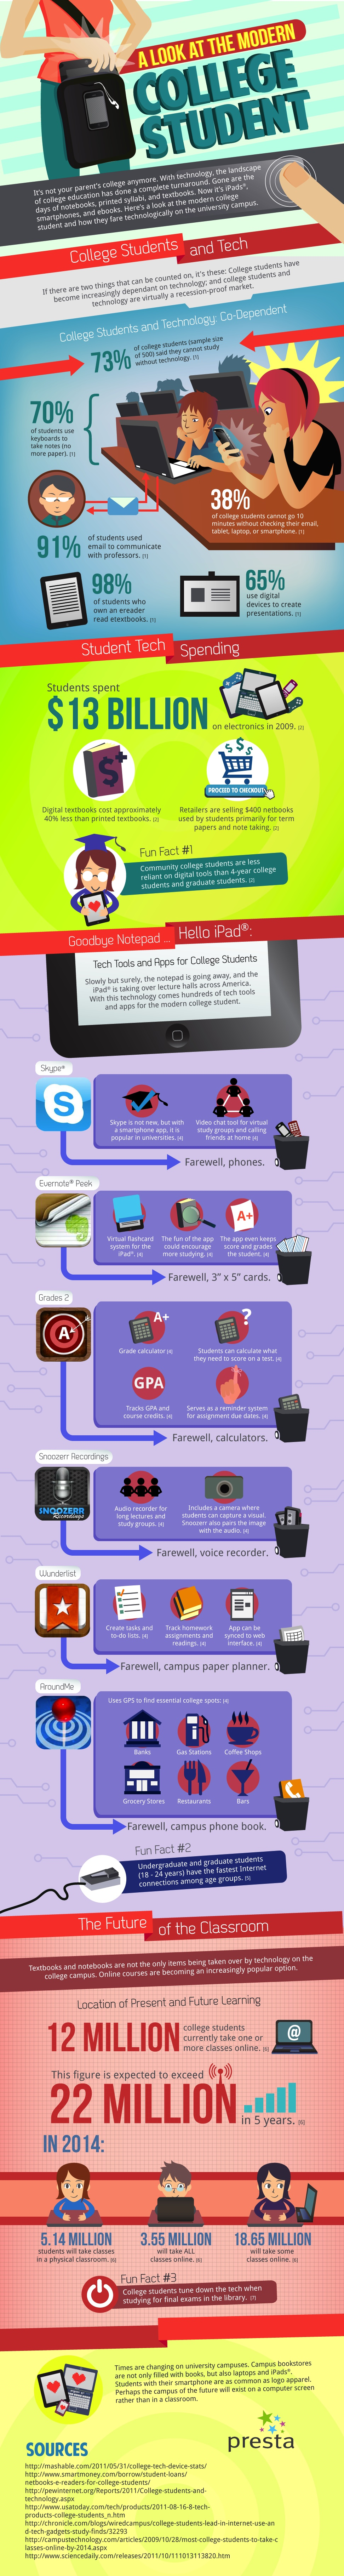 How Tech is Changing College Life [Infographic]